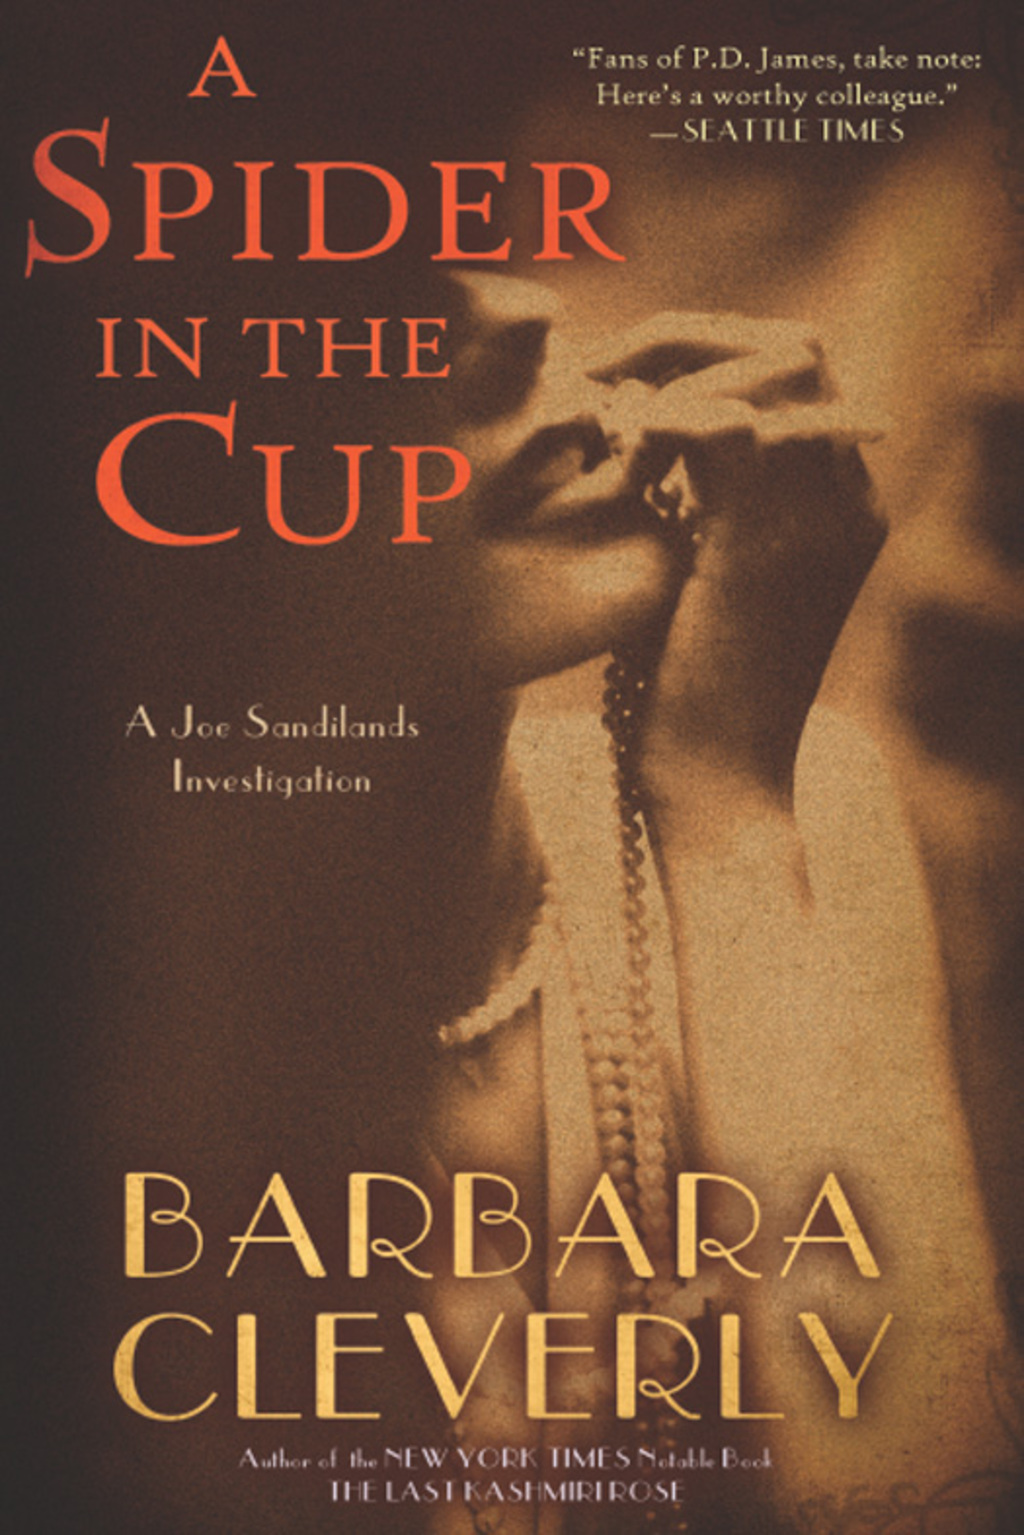 A Spider in the Cup (ebook) eBooks